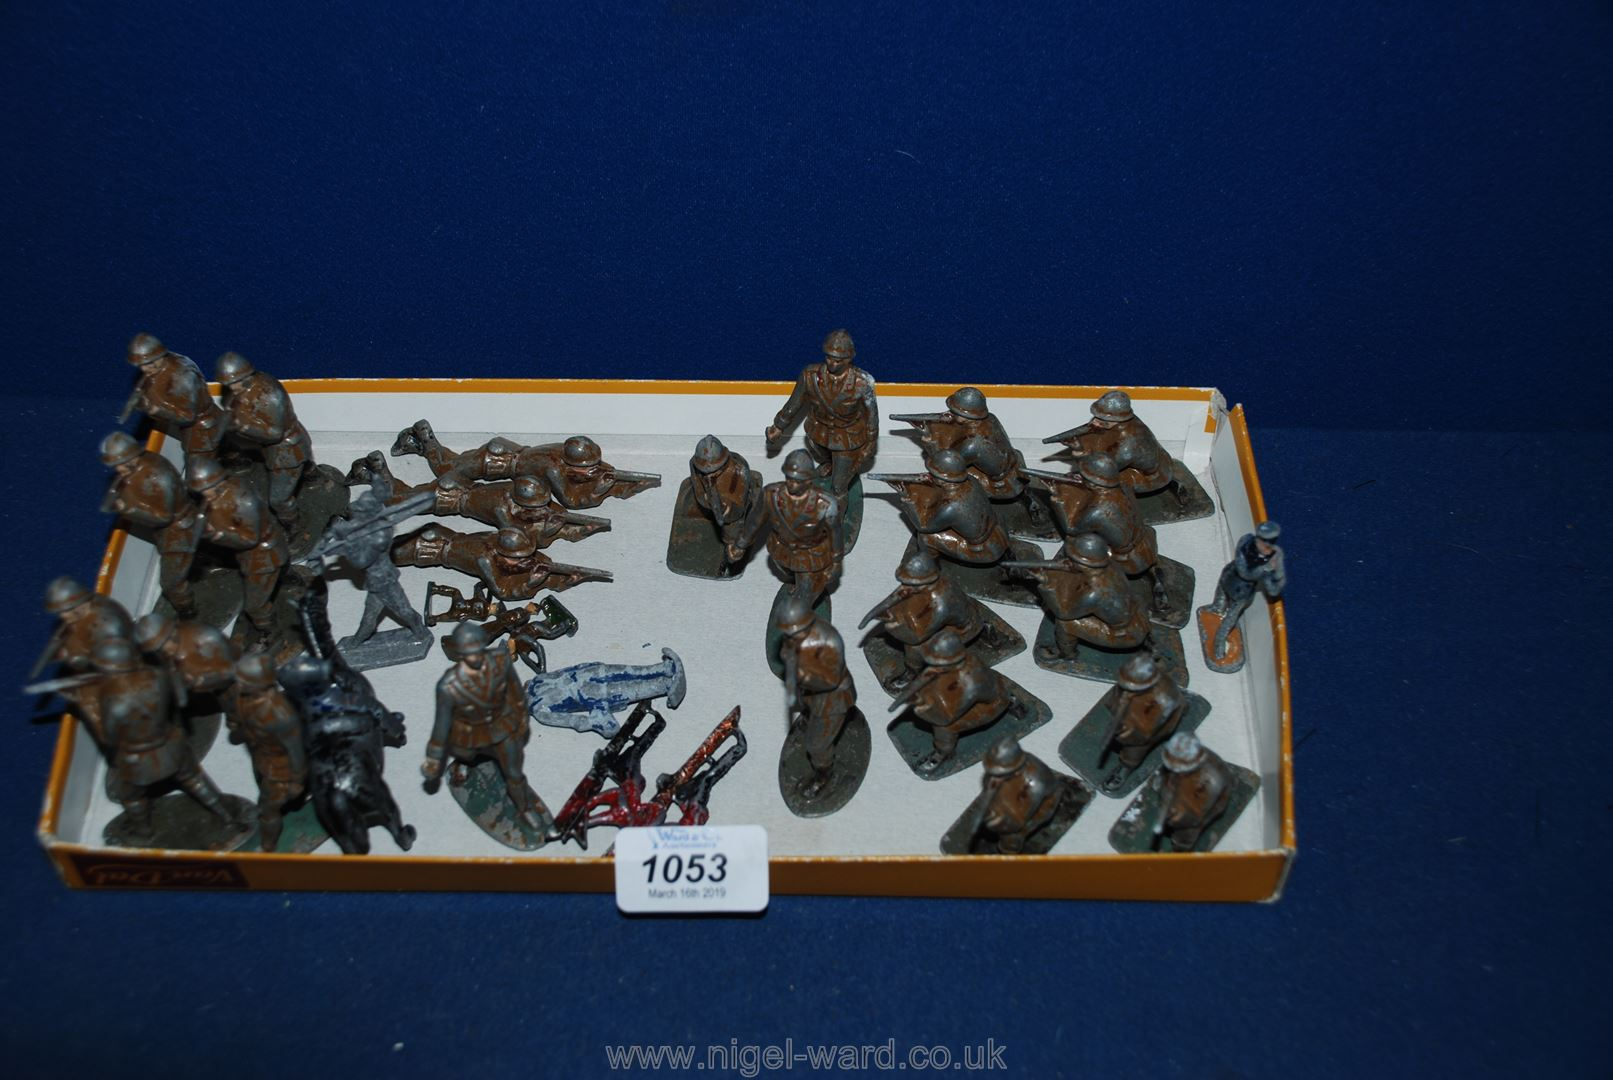 Lot 1053 - A quantity of lead soldiers, standing, crouching, etc.